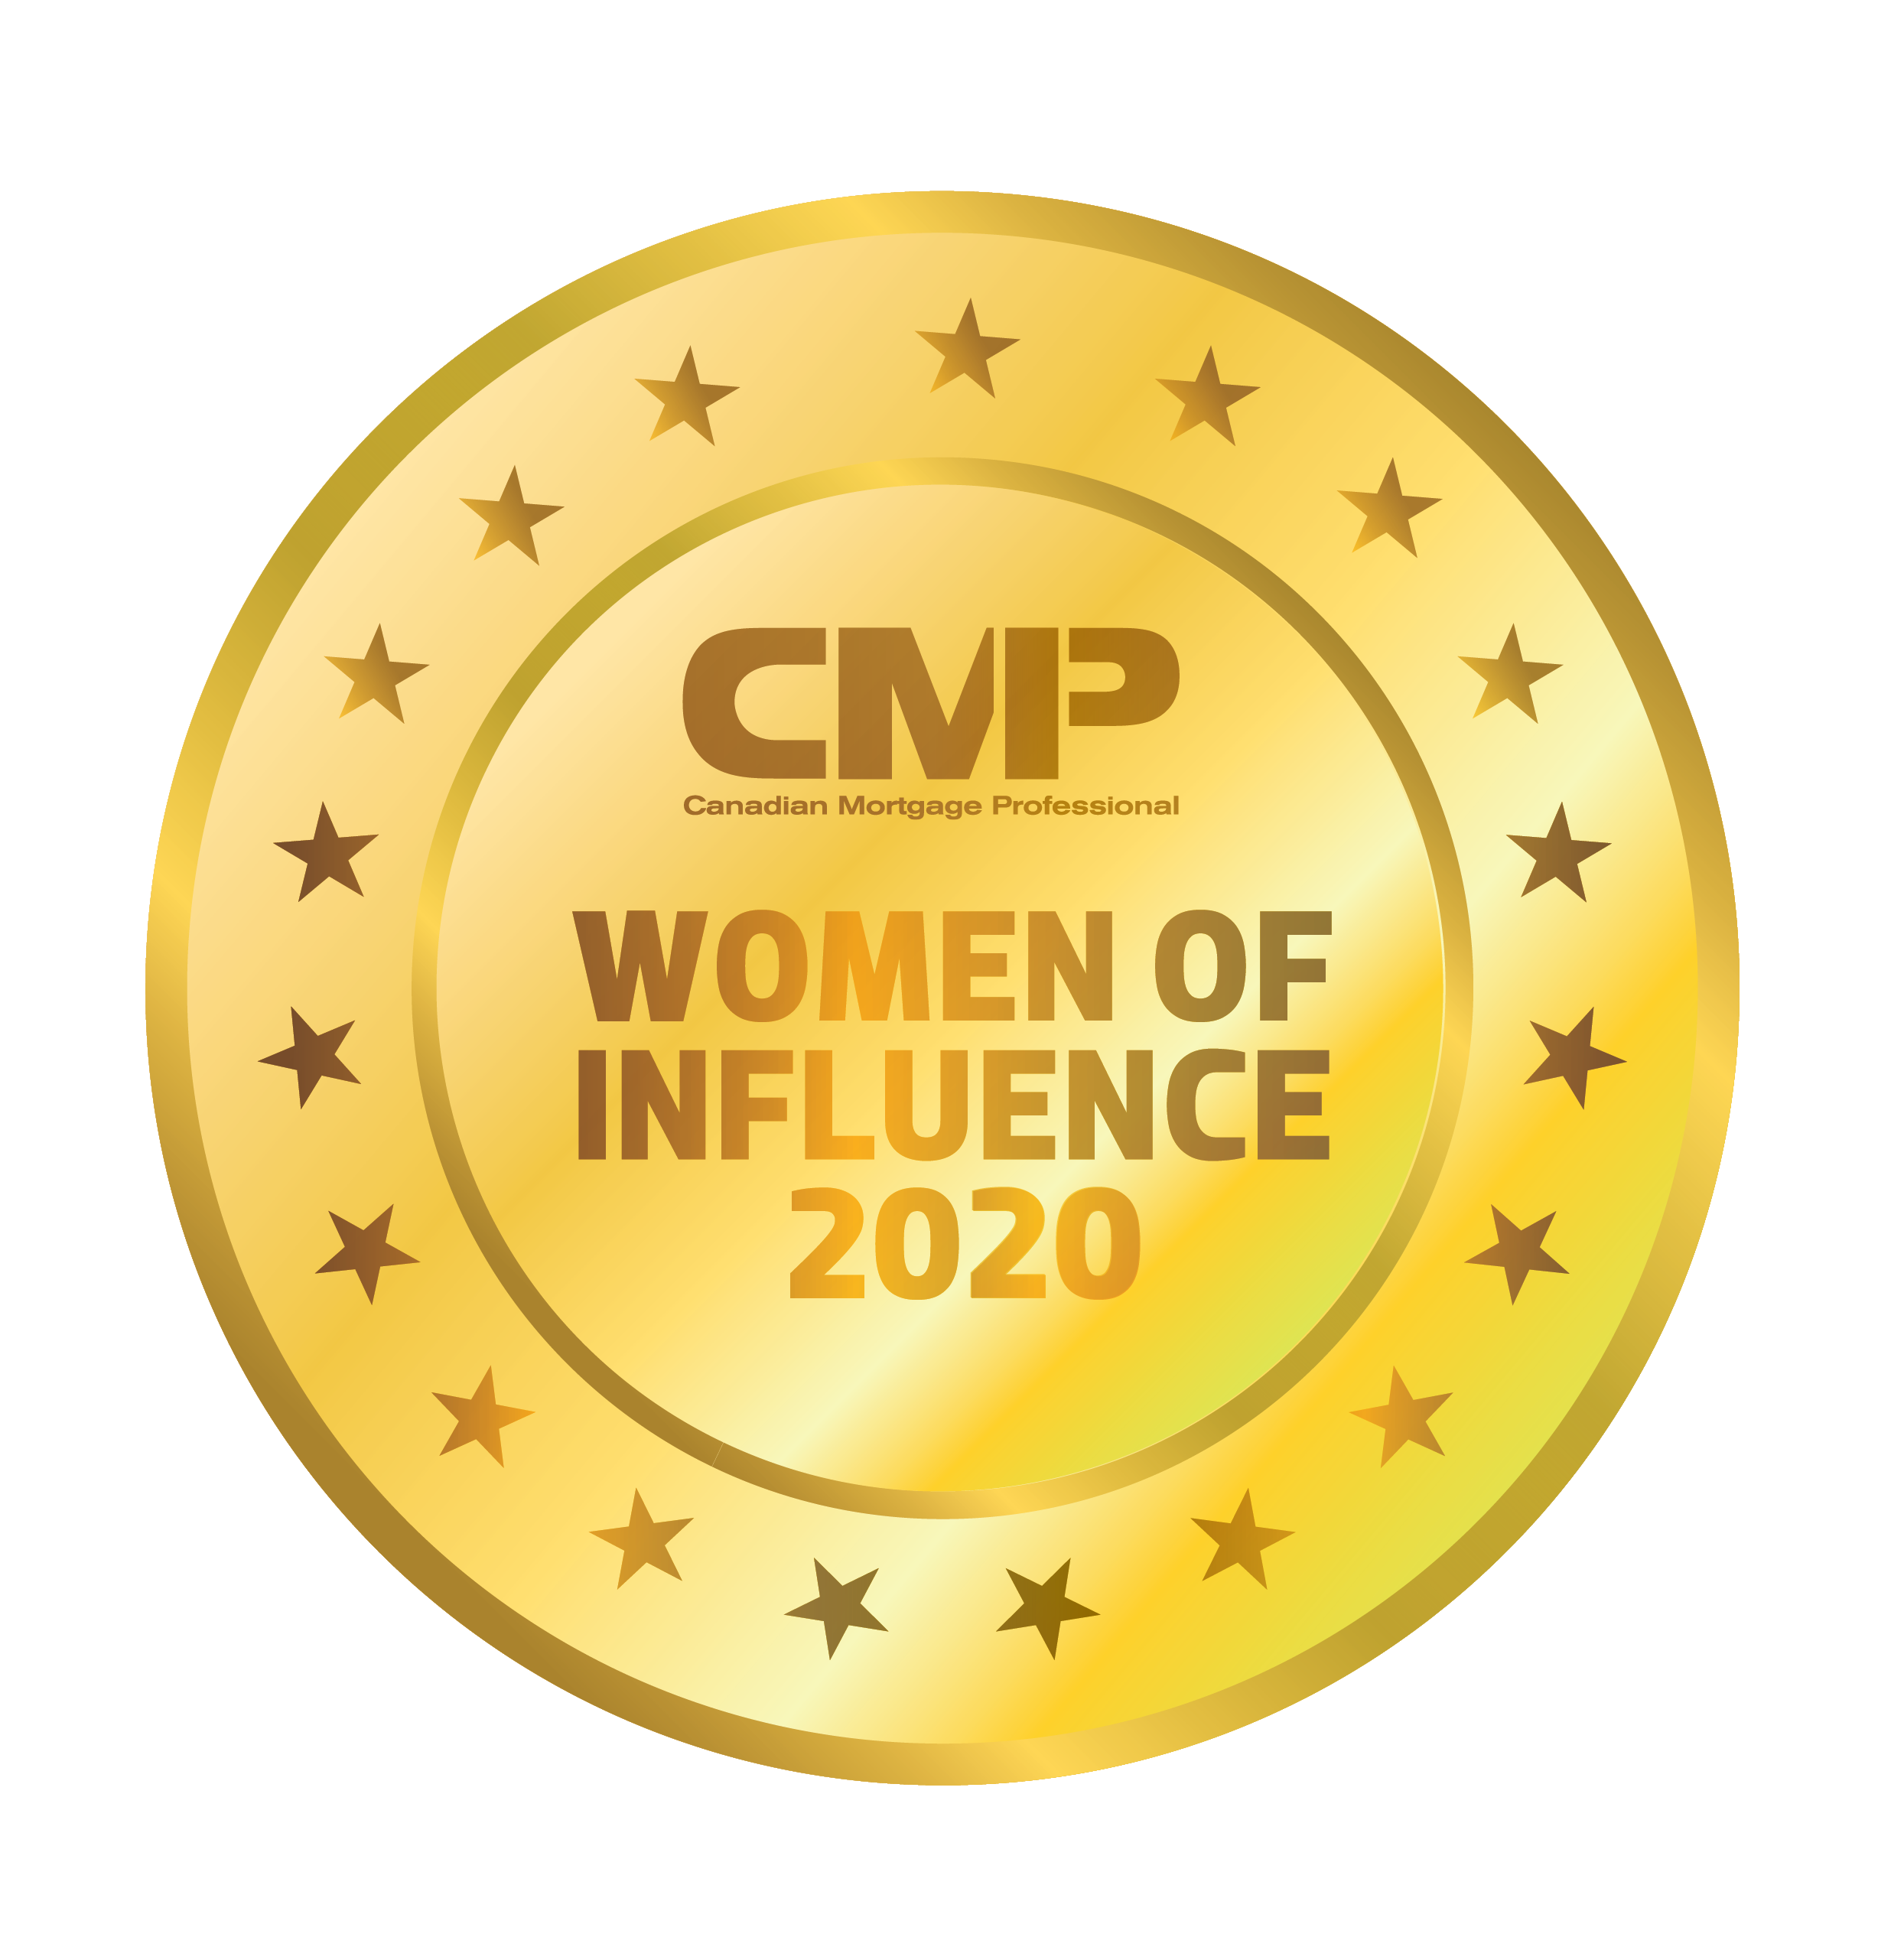 Women of Influence 2020 Methodology